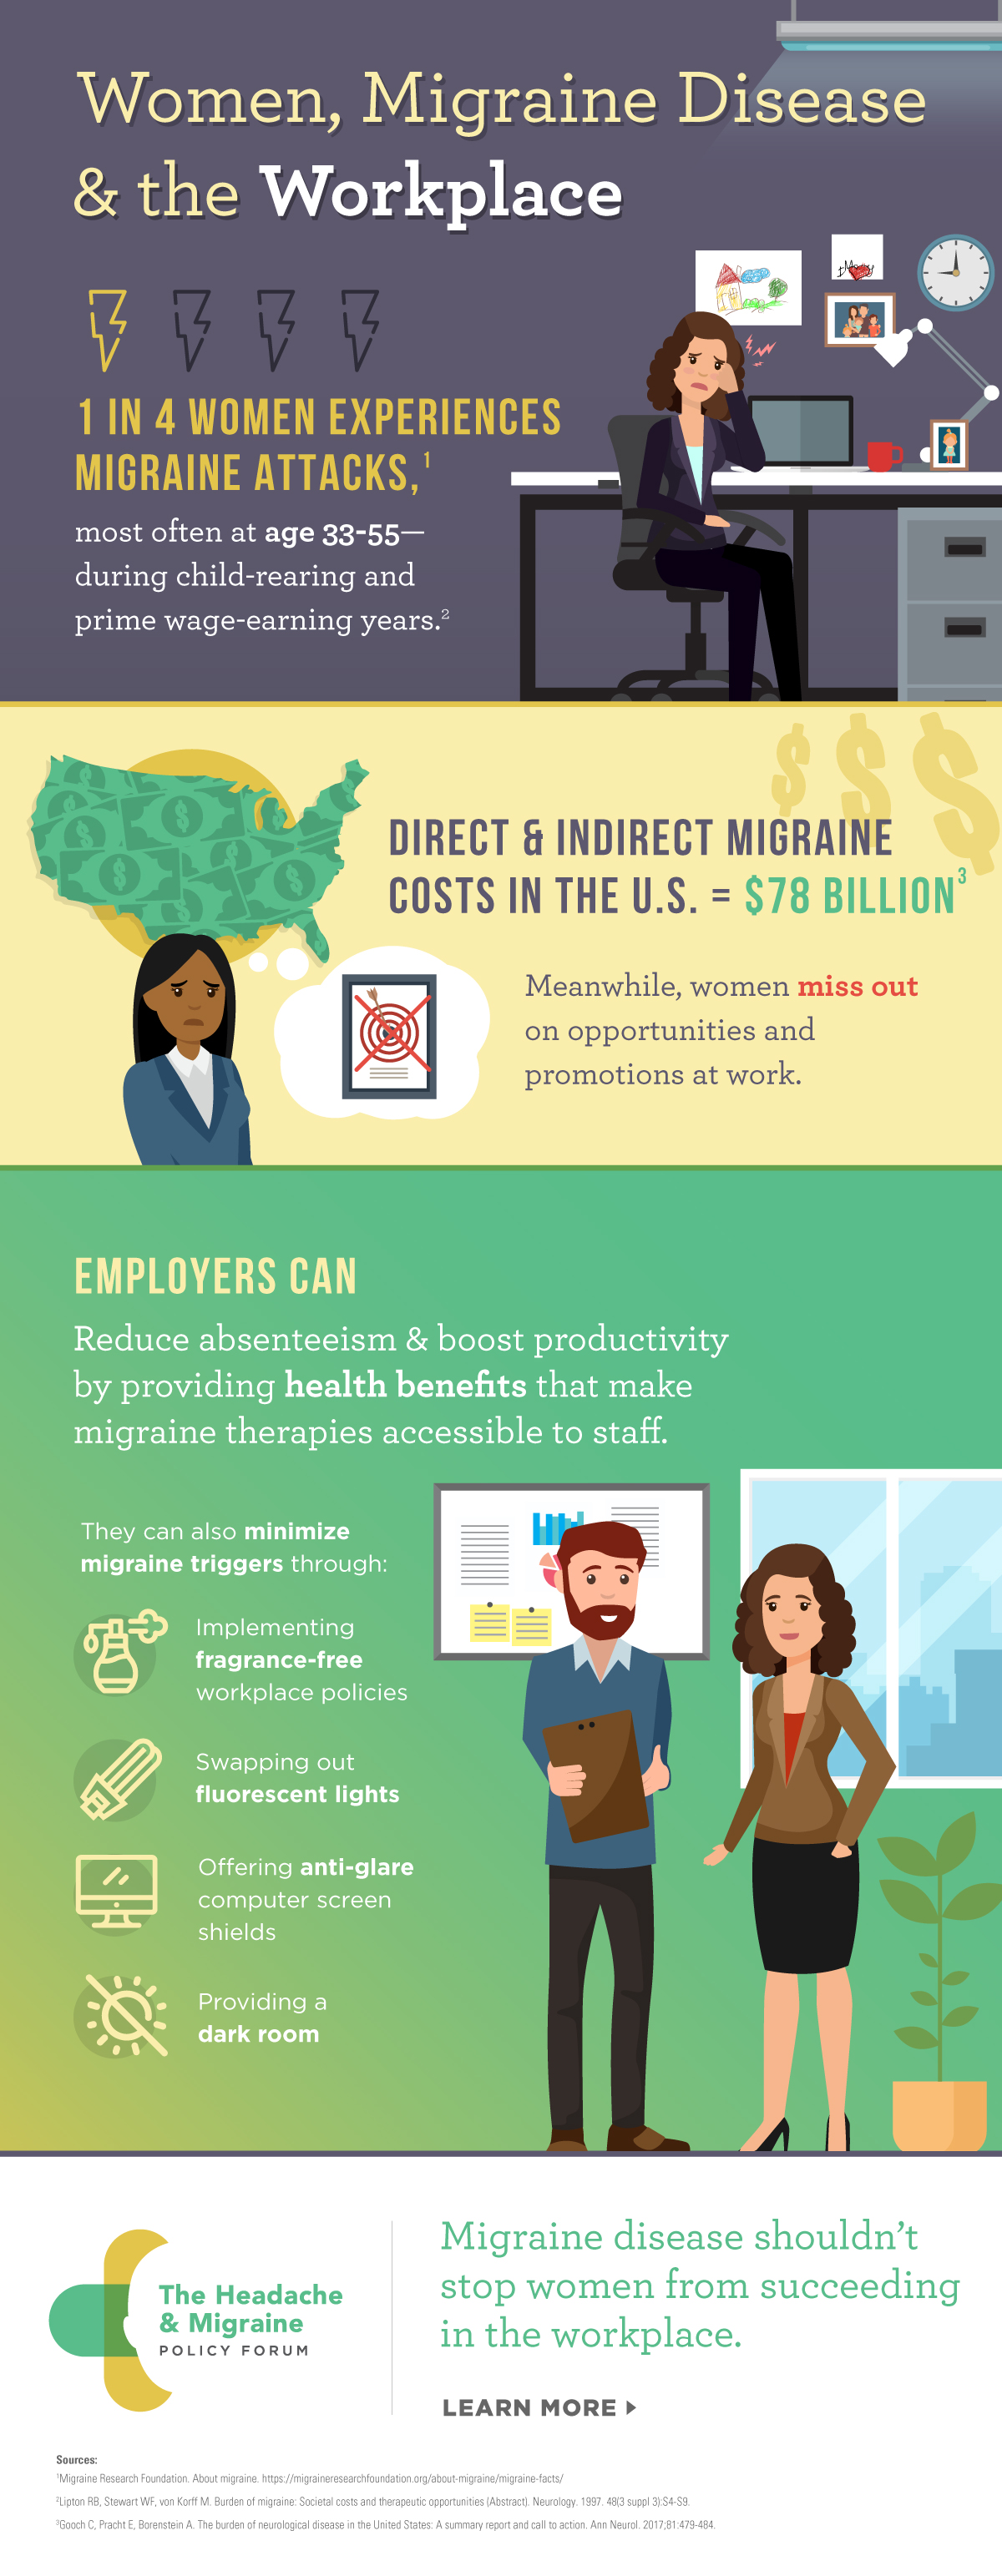 HMPF_Women, Migraine & Workplace_Infographic_June 2019.jpg